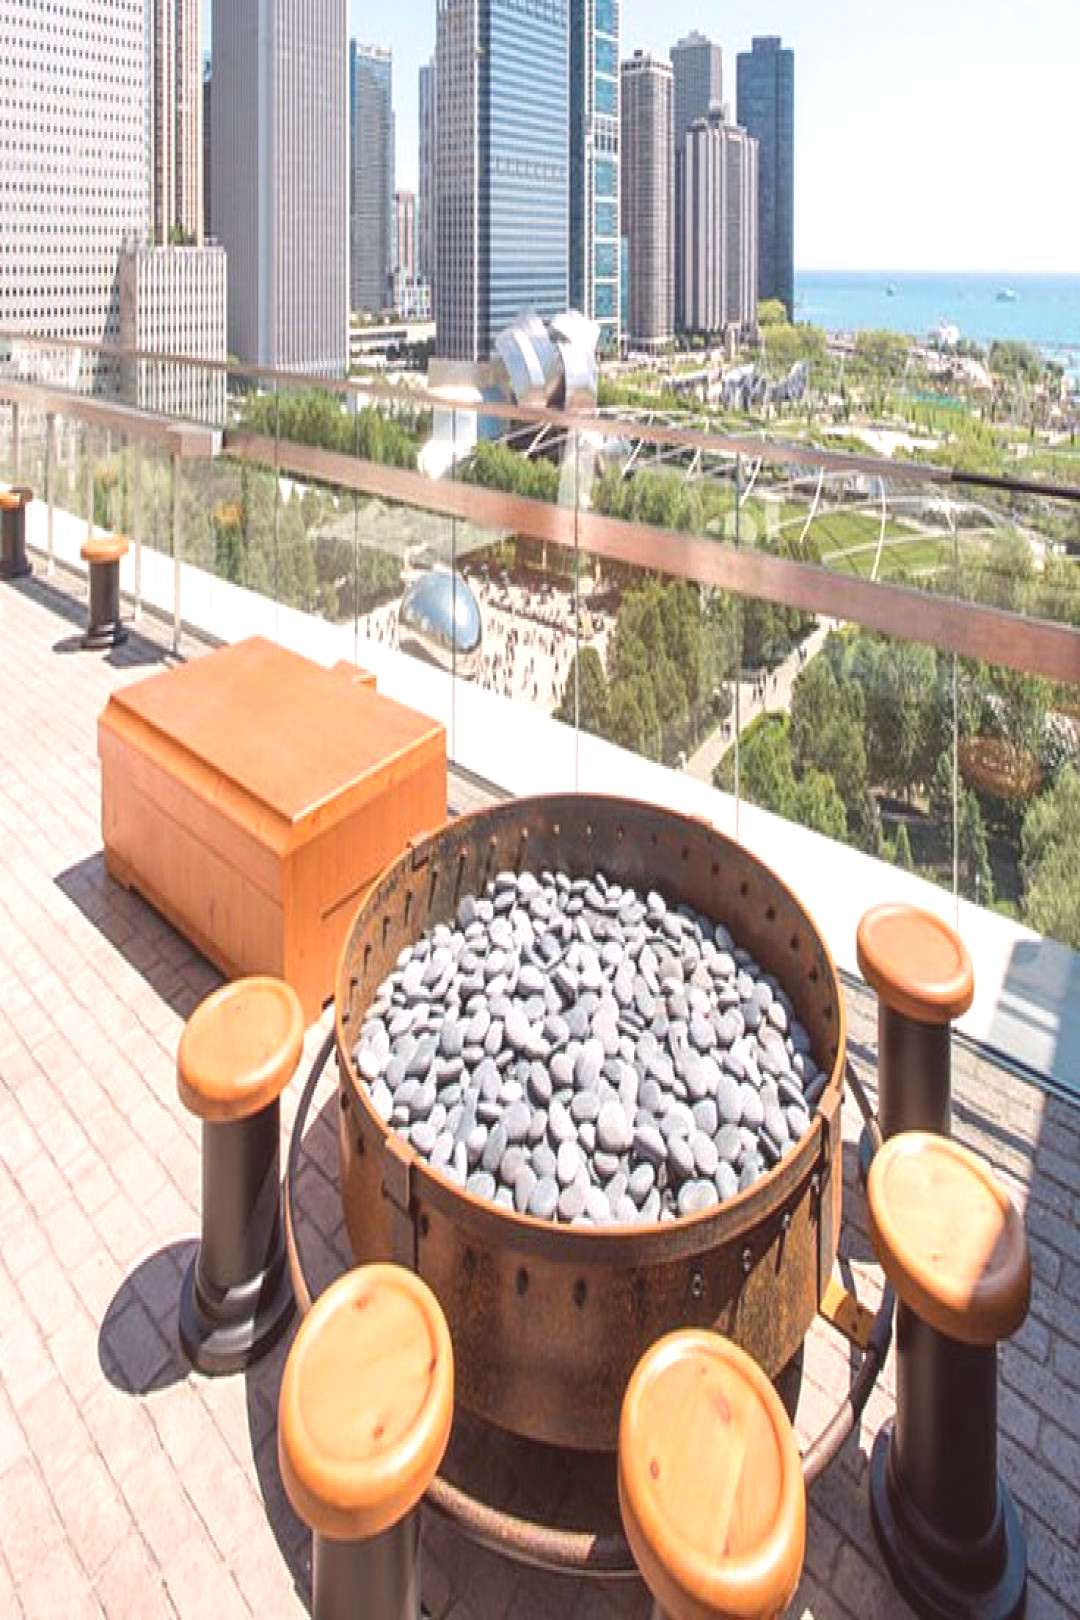 Chicago Restaurants With A View Foodie Travel Chicago restaurants with a view | chicago restaurants